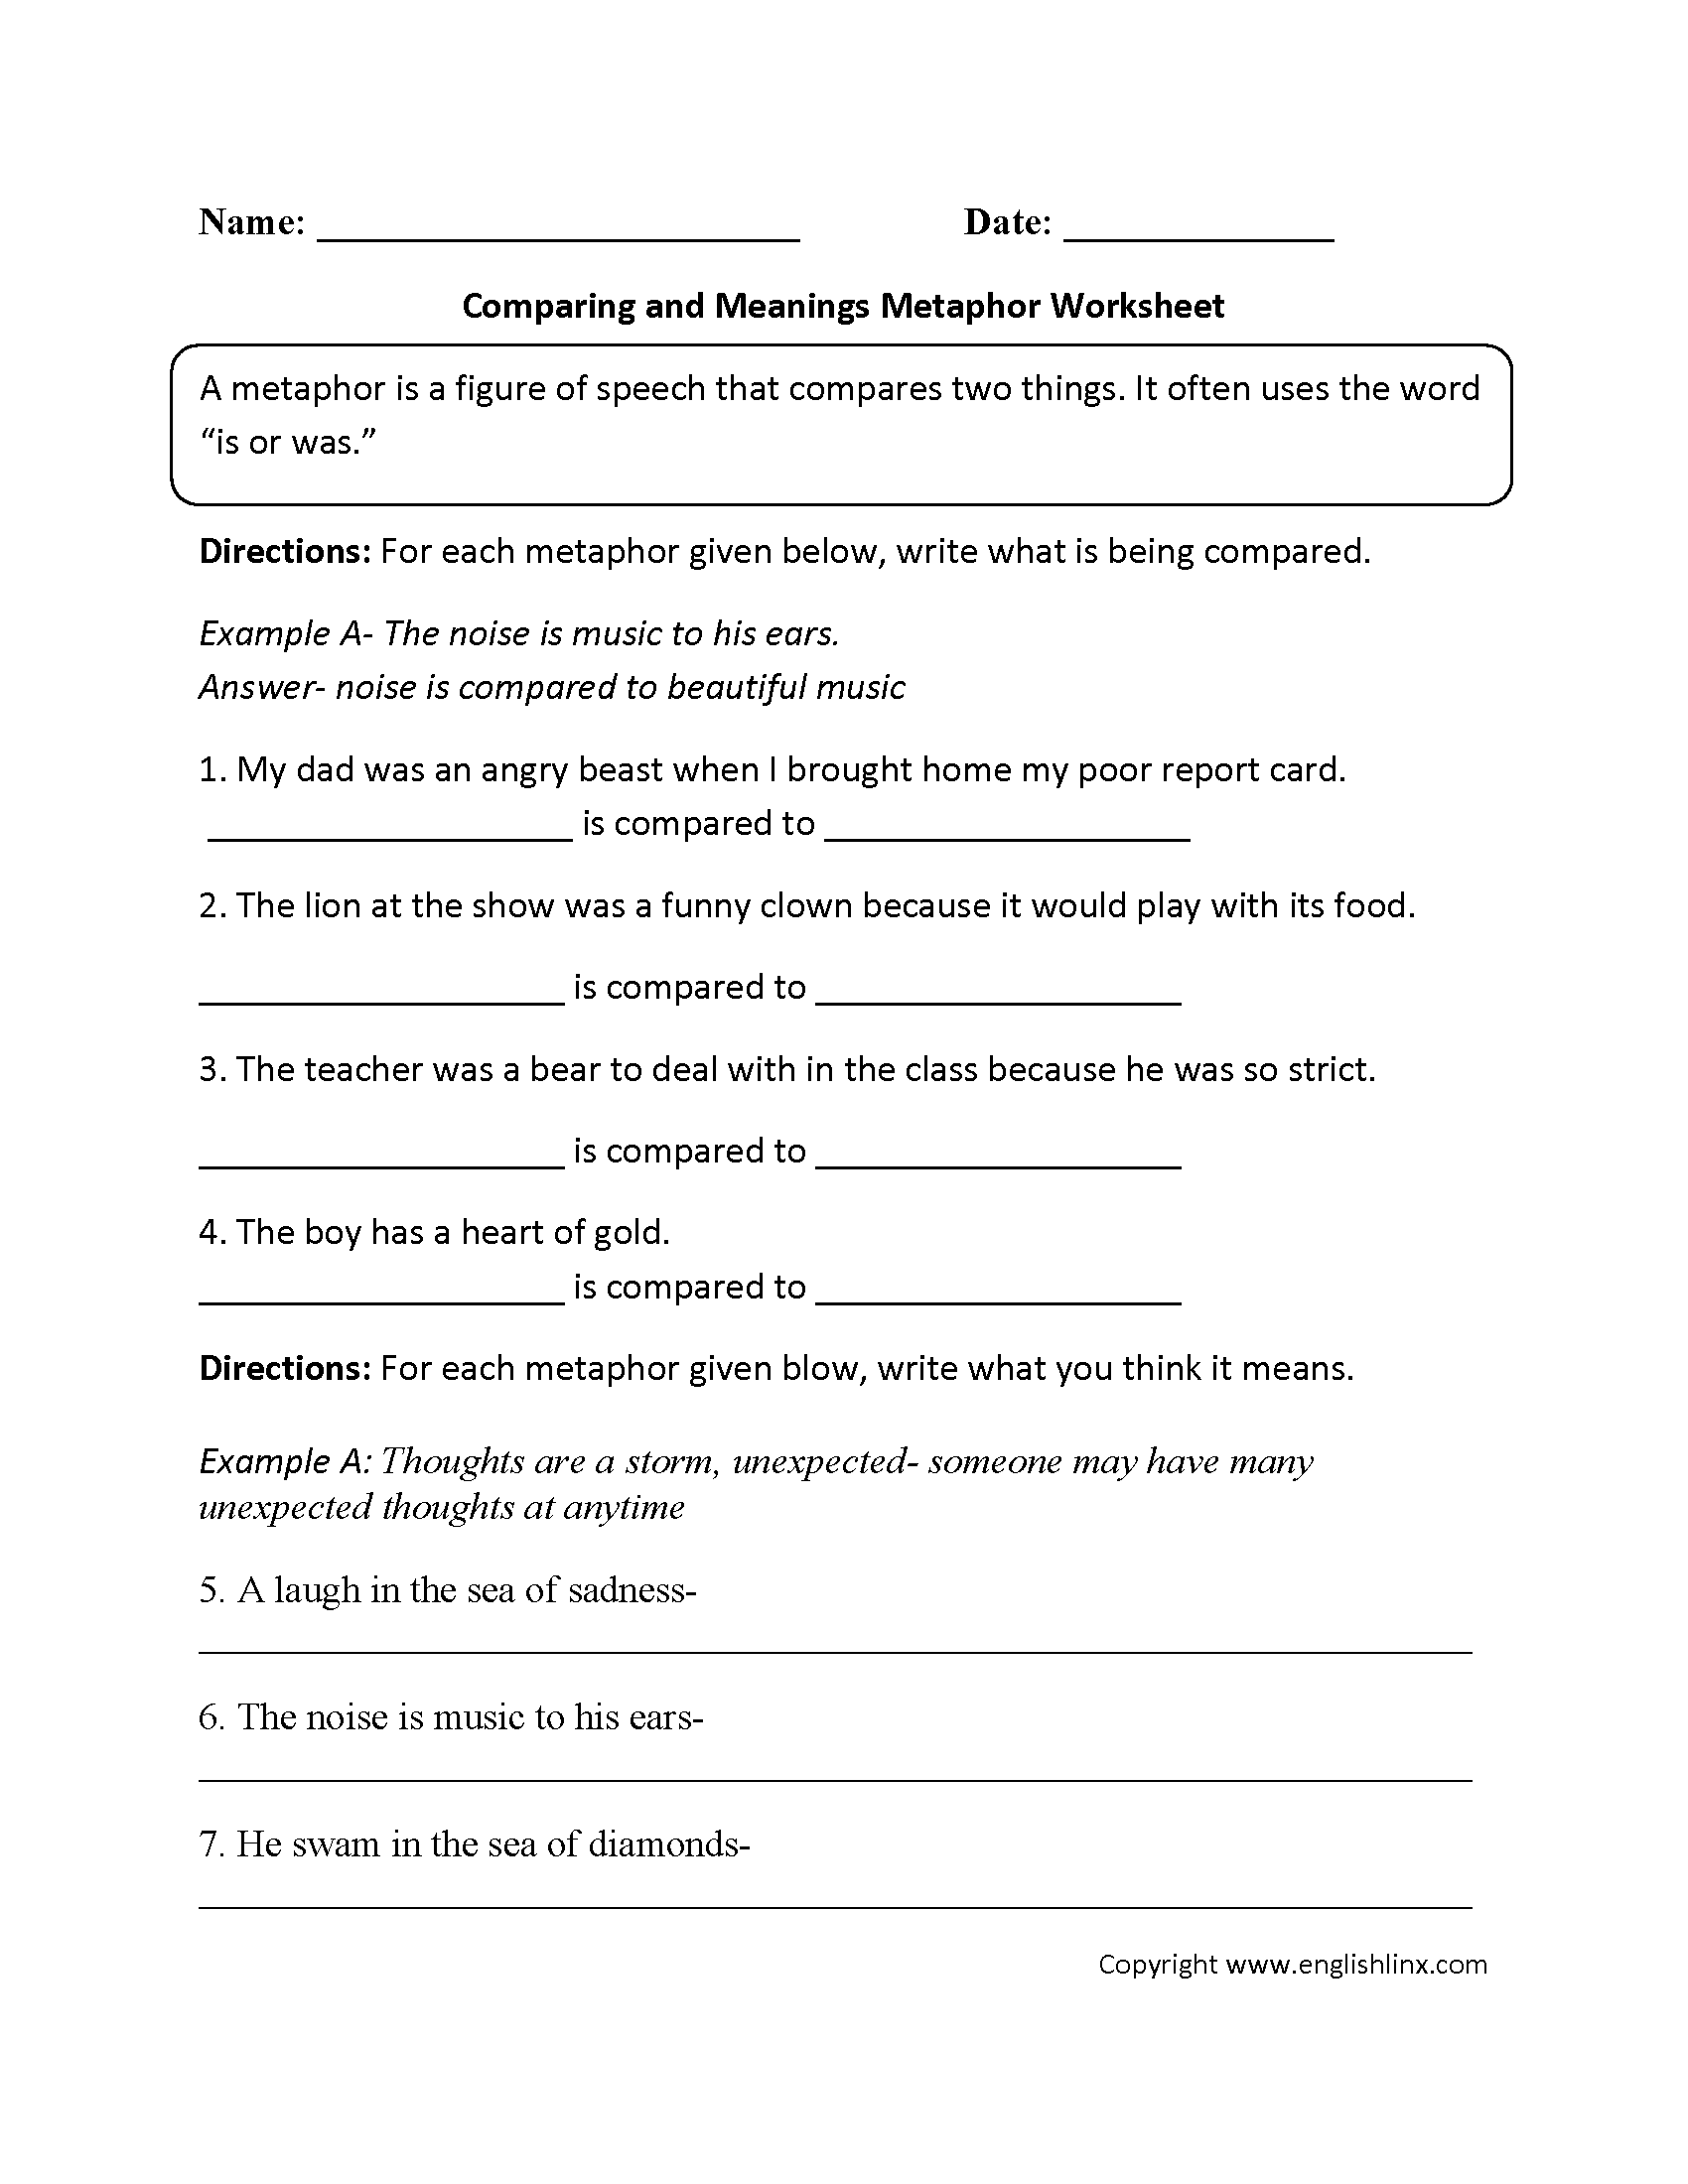 Comparing And Meanings Metaphor Worksheet In 2020 | Similes